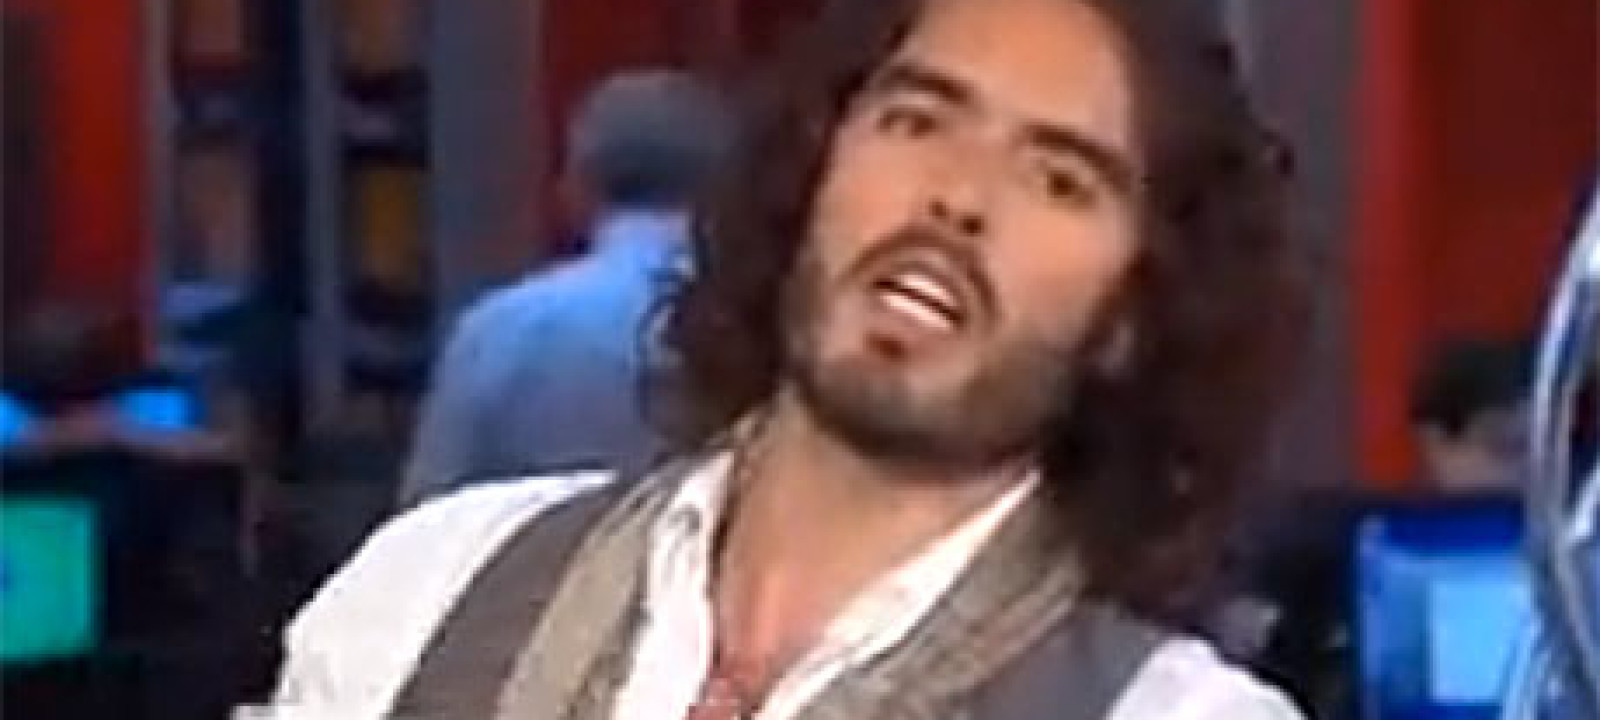 Russell Brand on MSNBC